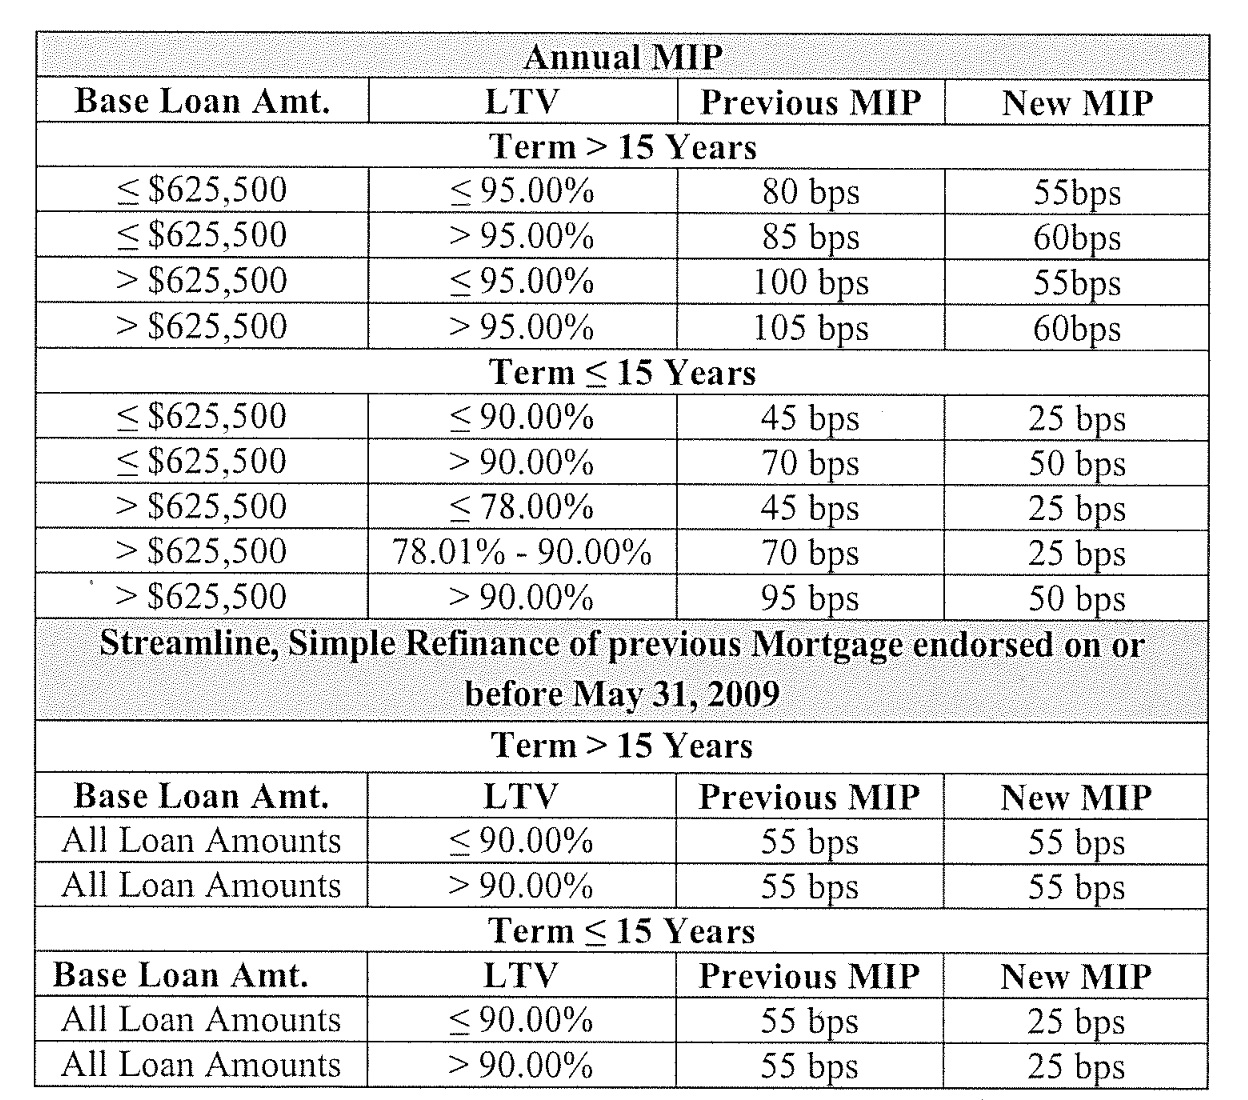 Fha Mip Rates For Revised